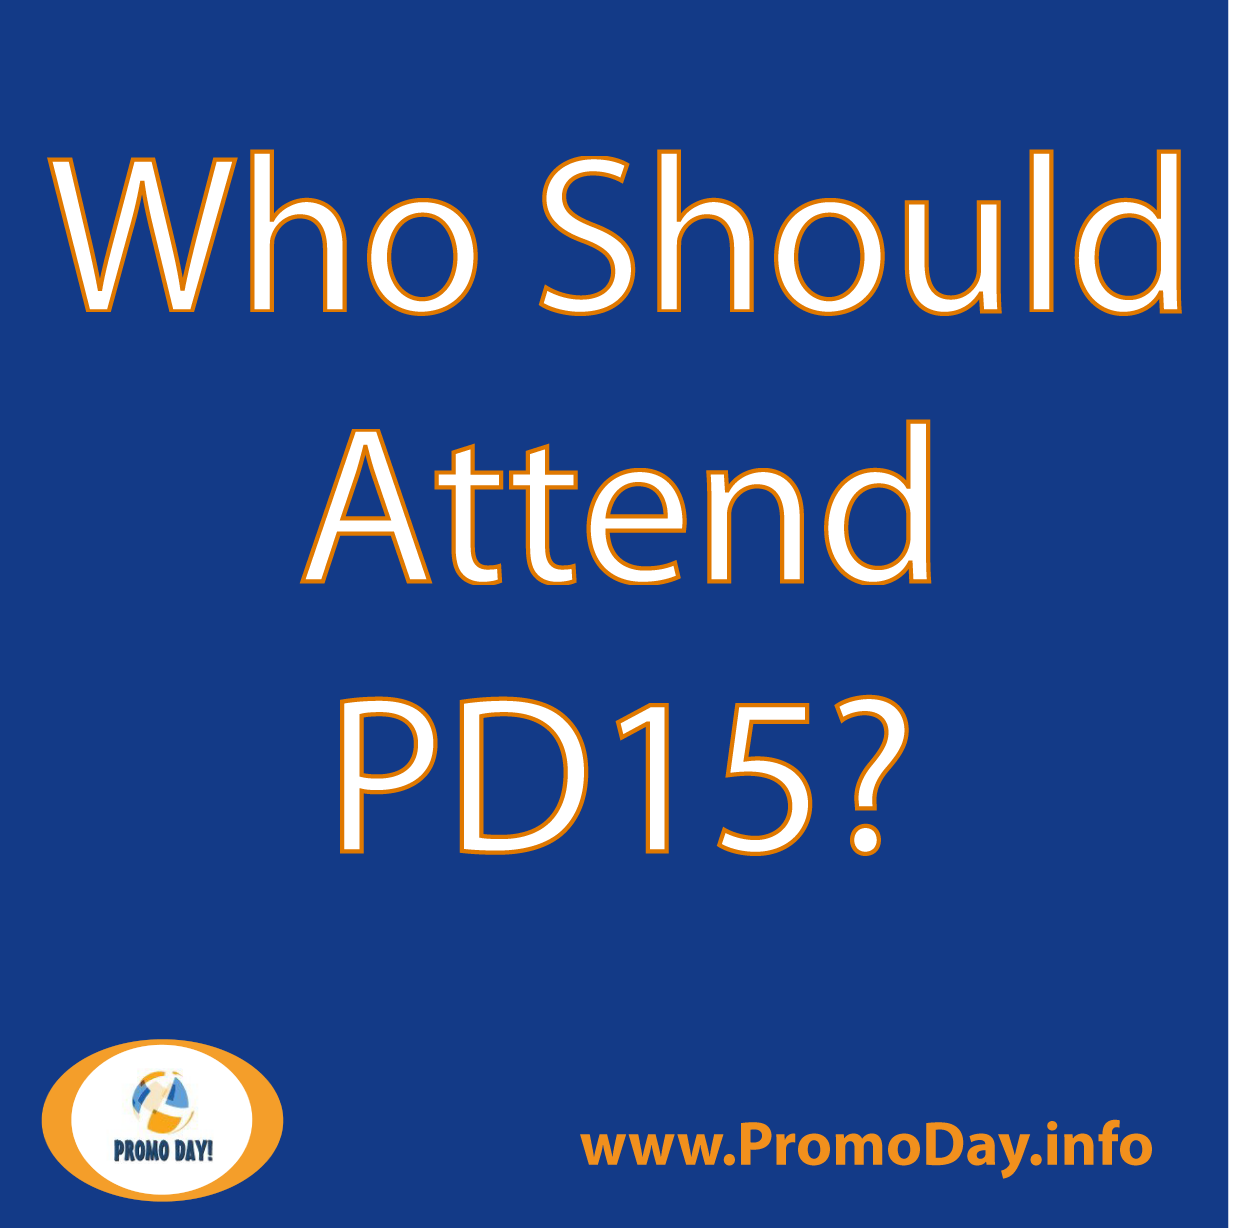 Who Should Attend #PD15? www.PromoDay.info